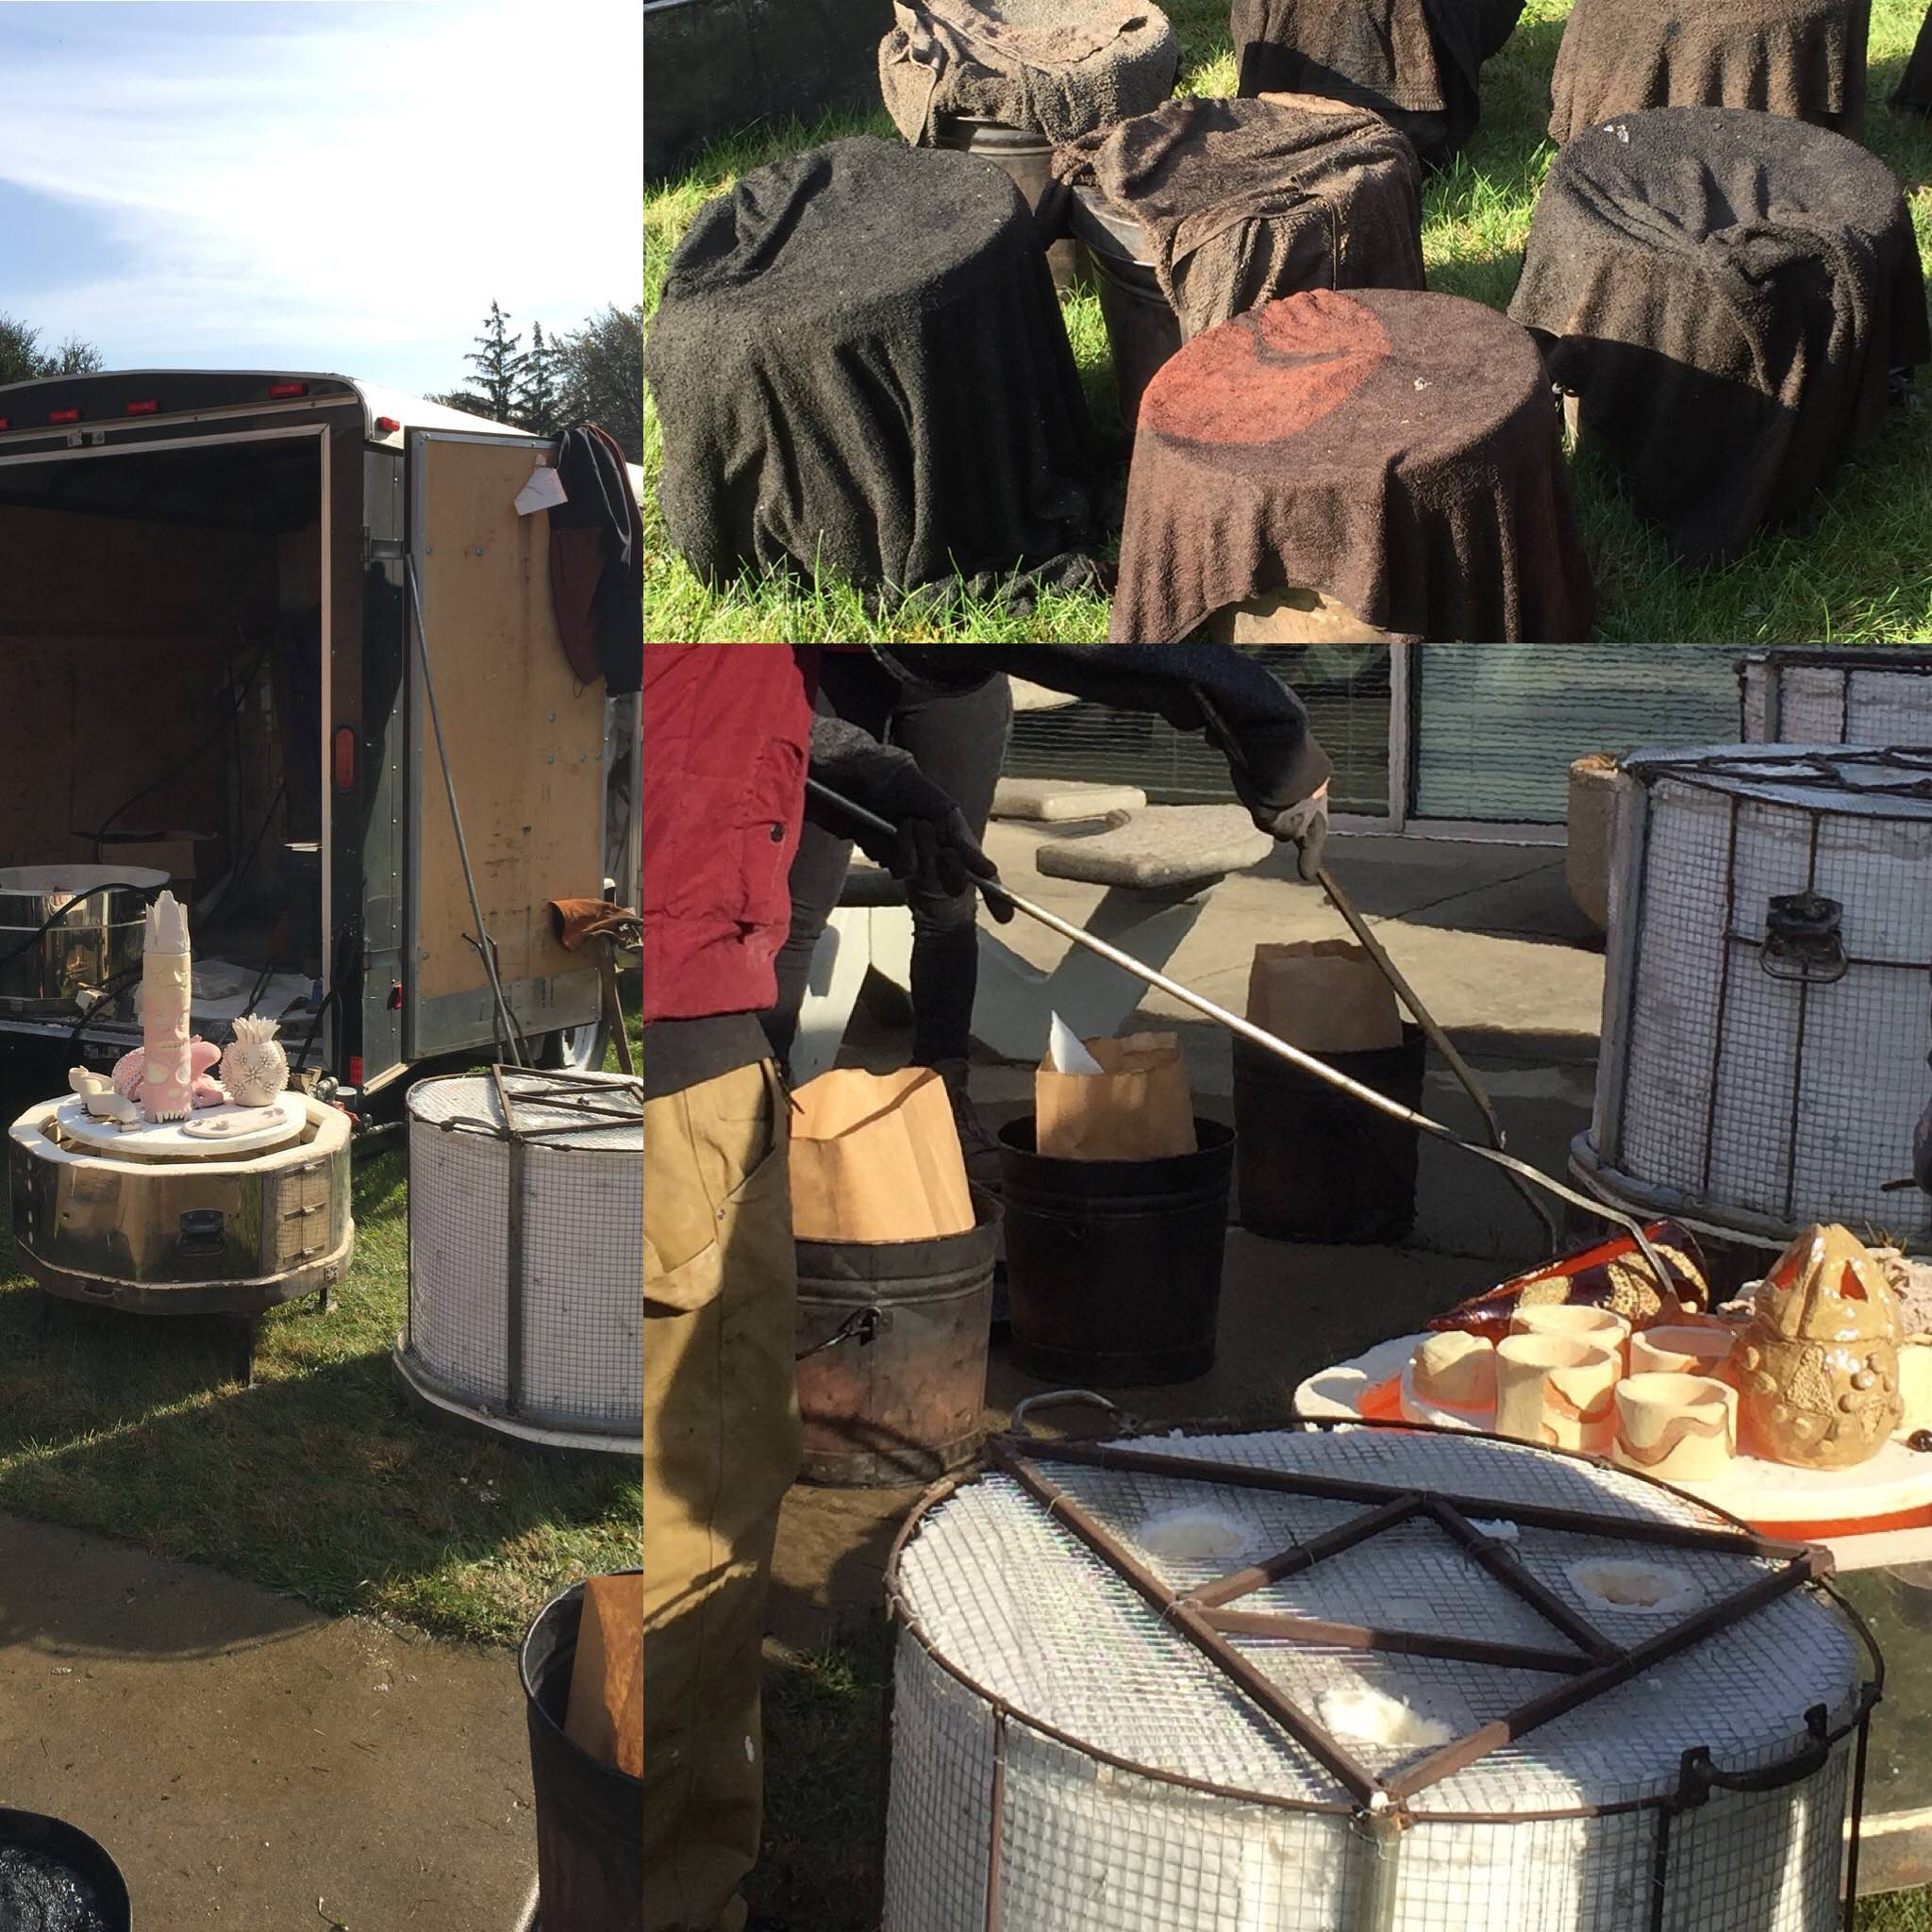 Photo collage of raku ceramics firing by  Carl Mankert of Chicago Kiln Service  at our local high school. They use clay and glazes particular for raku which allows for the crackly or metallic appearance.